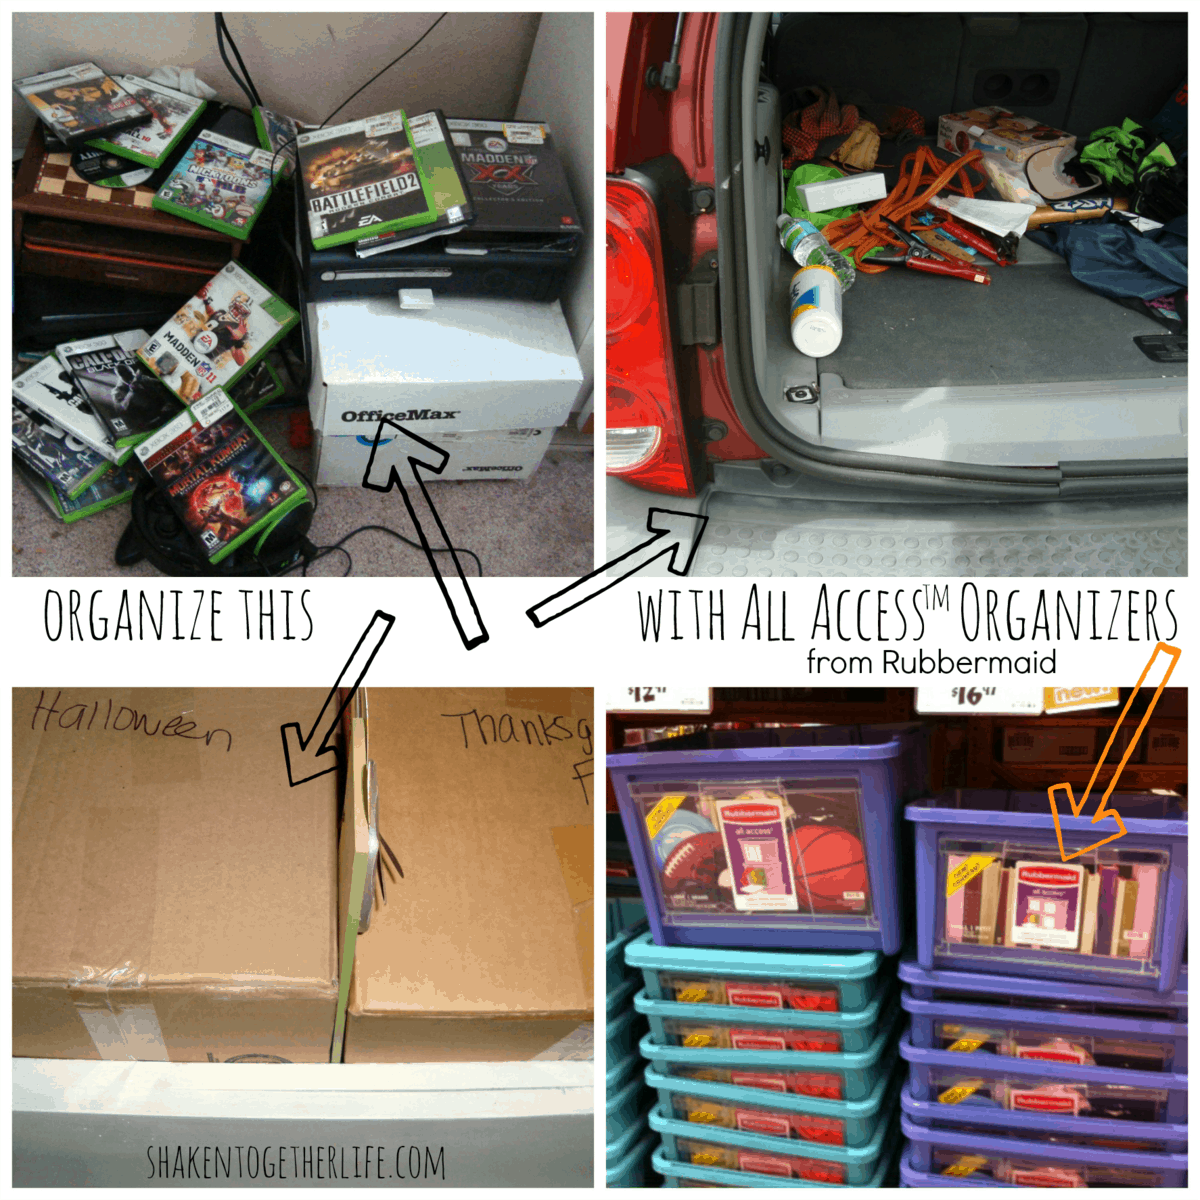 ganize your home with rubbermaid all access organizers - How To Organize Your Home